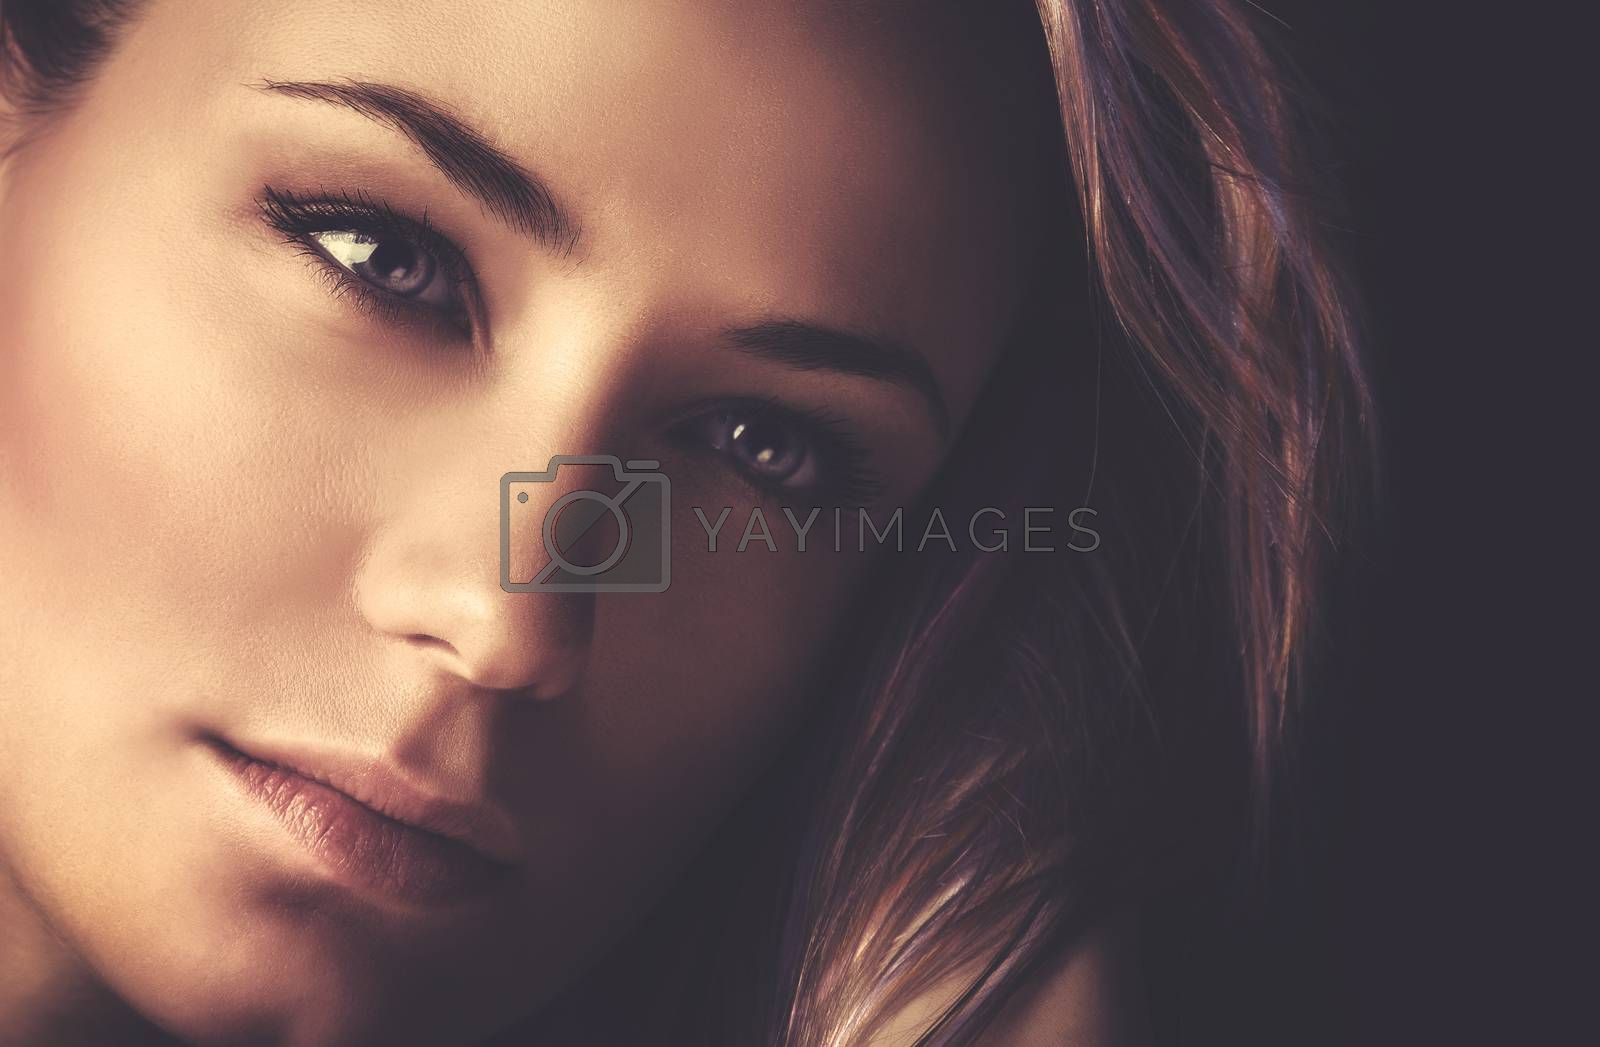 Closeup portrait of a beautiful woman with perfect nude makeup on dark background, gorgeous photoshoot of attractive model